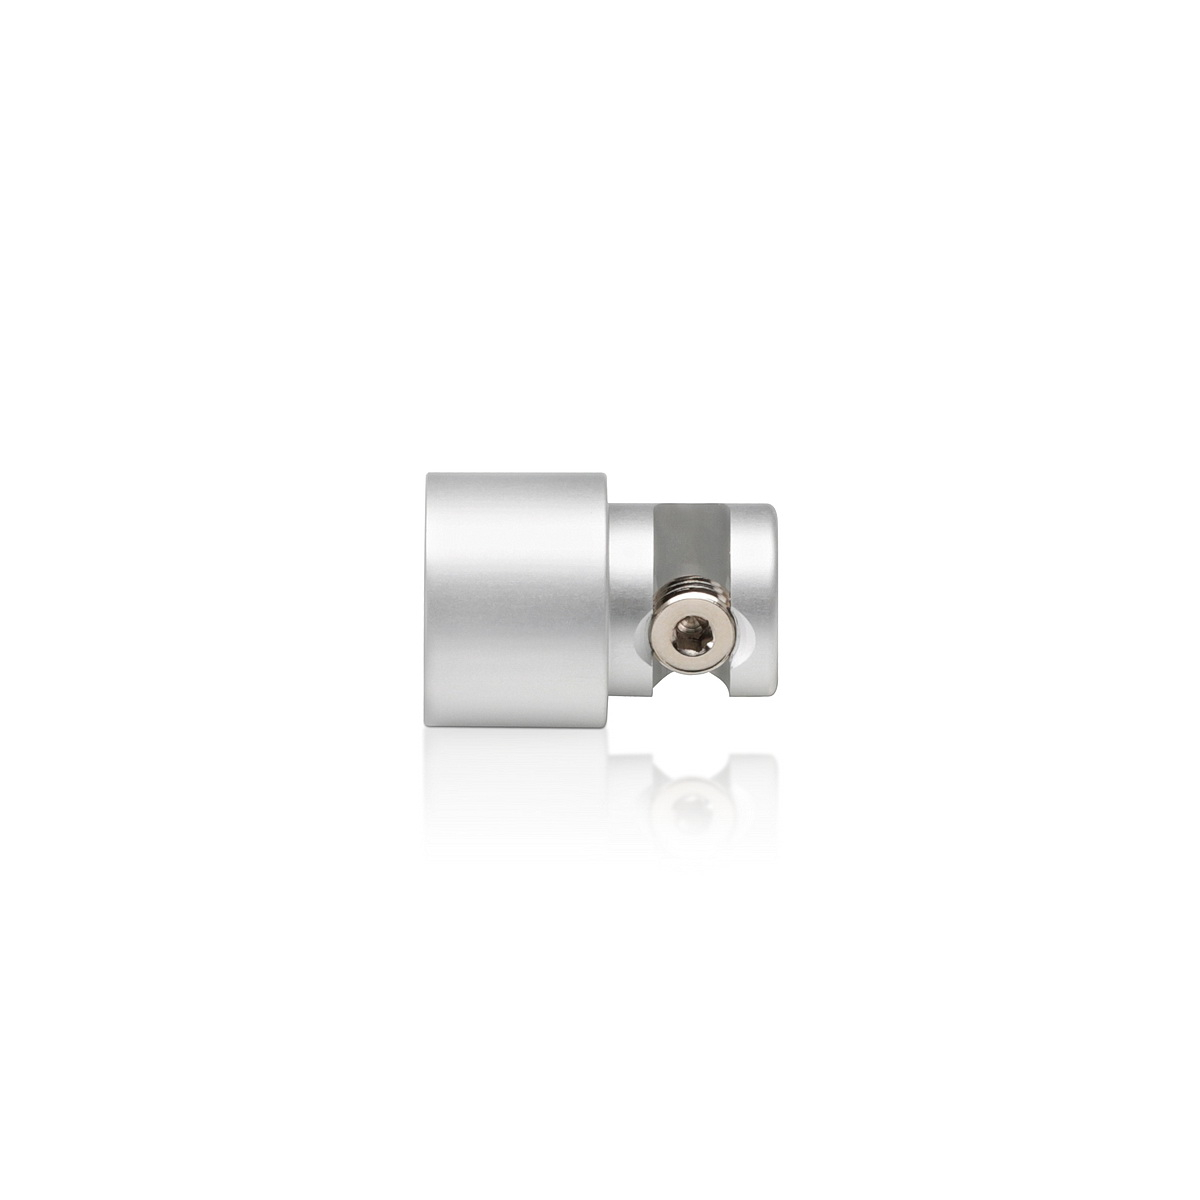 Pipe | Cable Junction for 5/8'' Aluminum Pipe & 1/8'' (3.00) Cable (Inside use only)